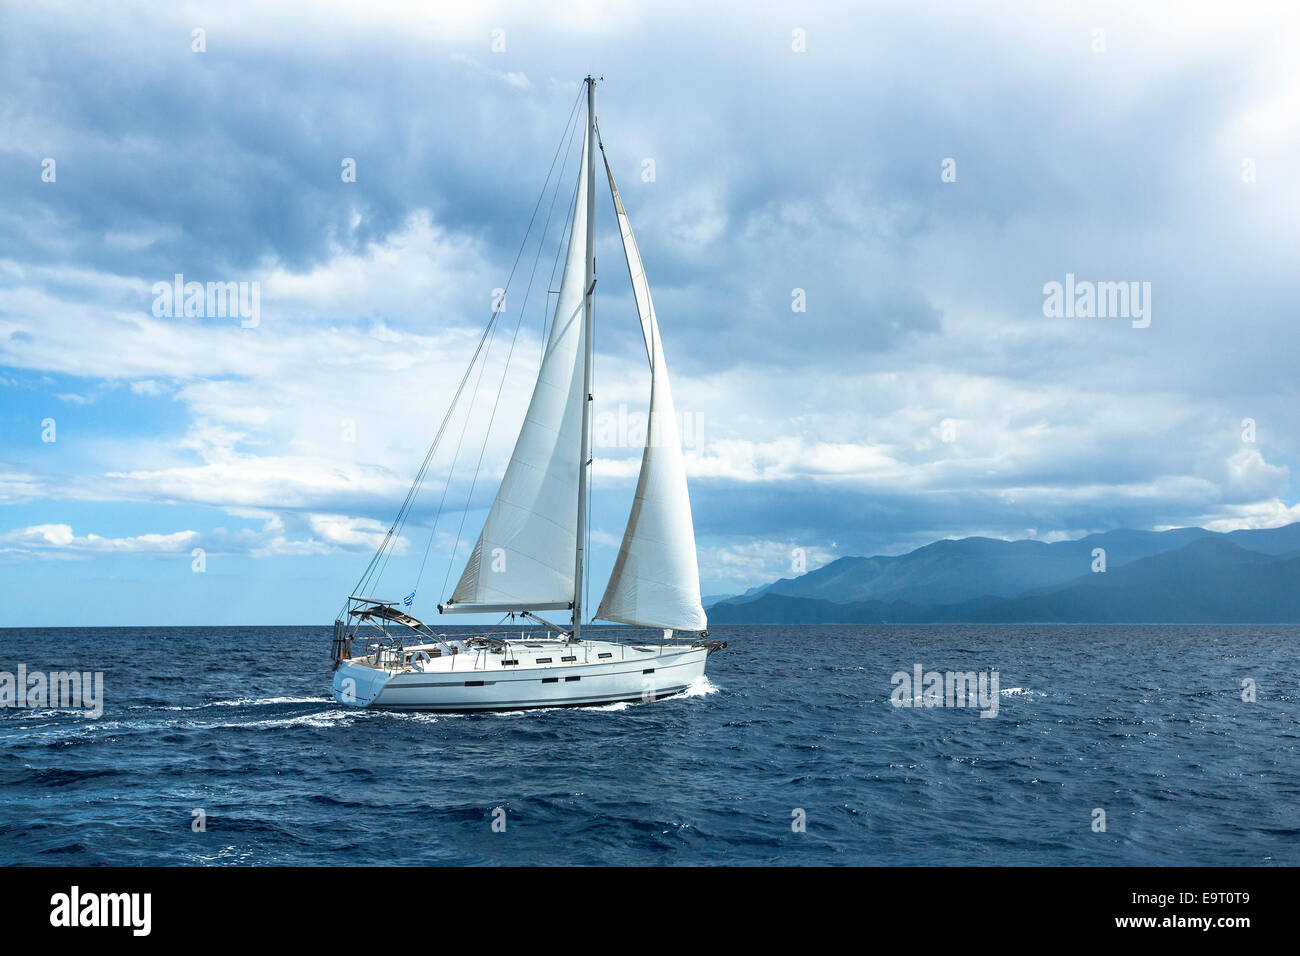 Sailing in cloudy weather. Yachting. Luxury yachts. - Stock Image